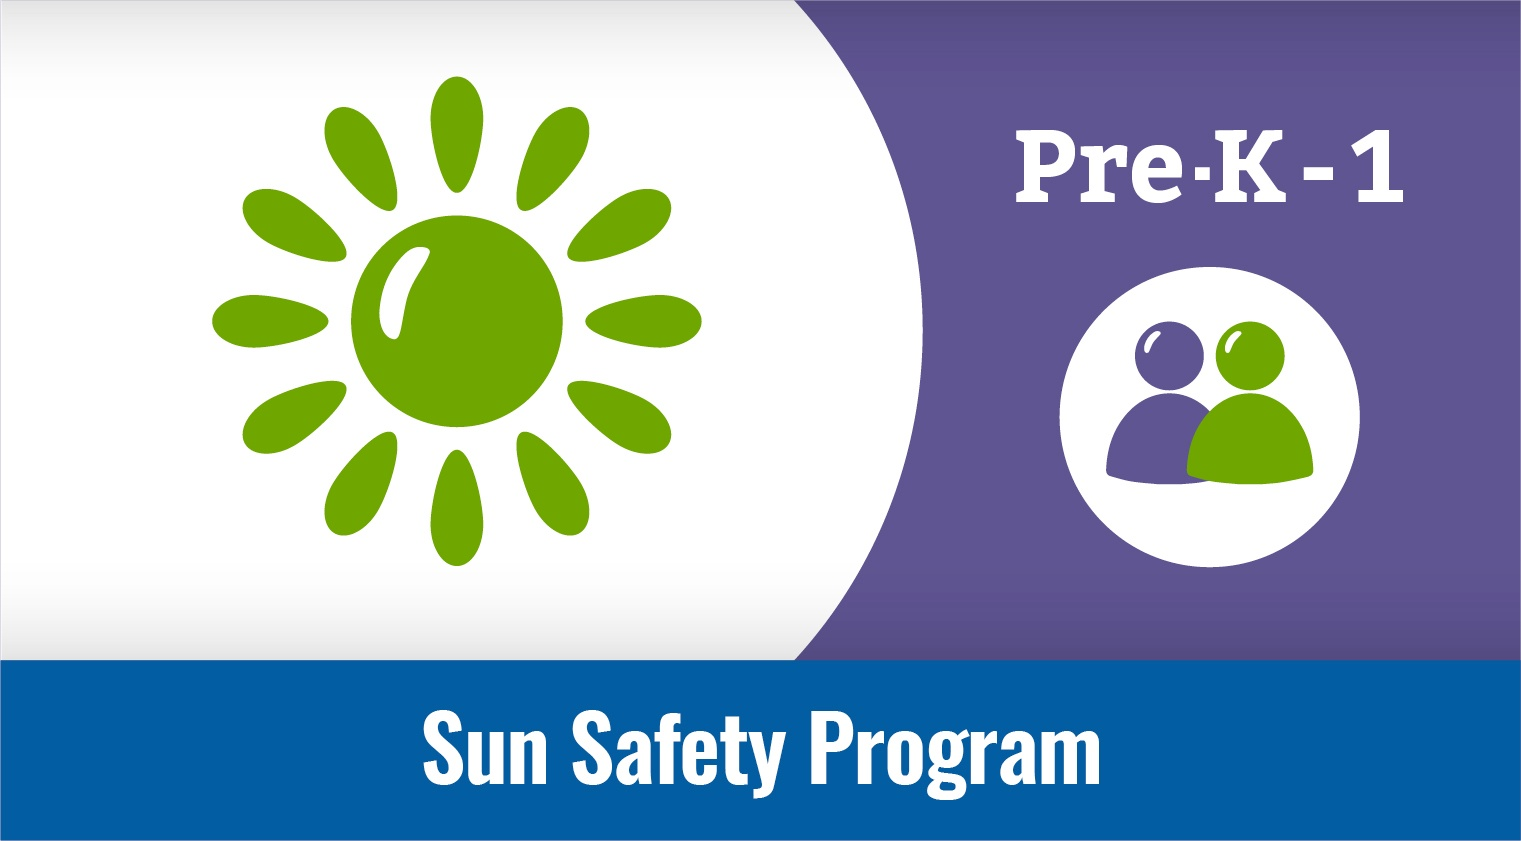 Ray & the Sunbeatables®: A Sun Safety Curriculum